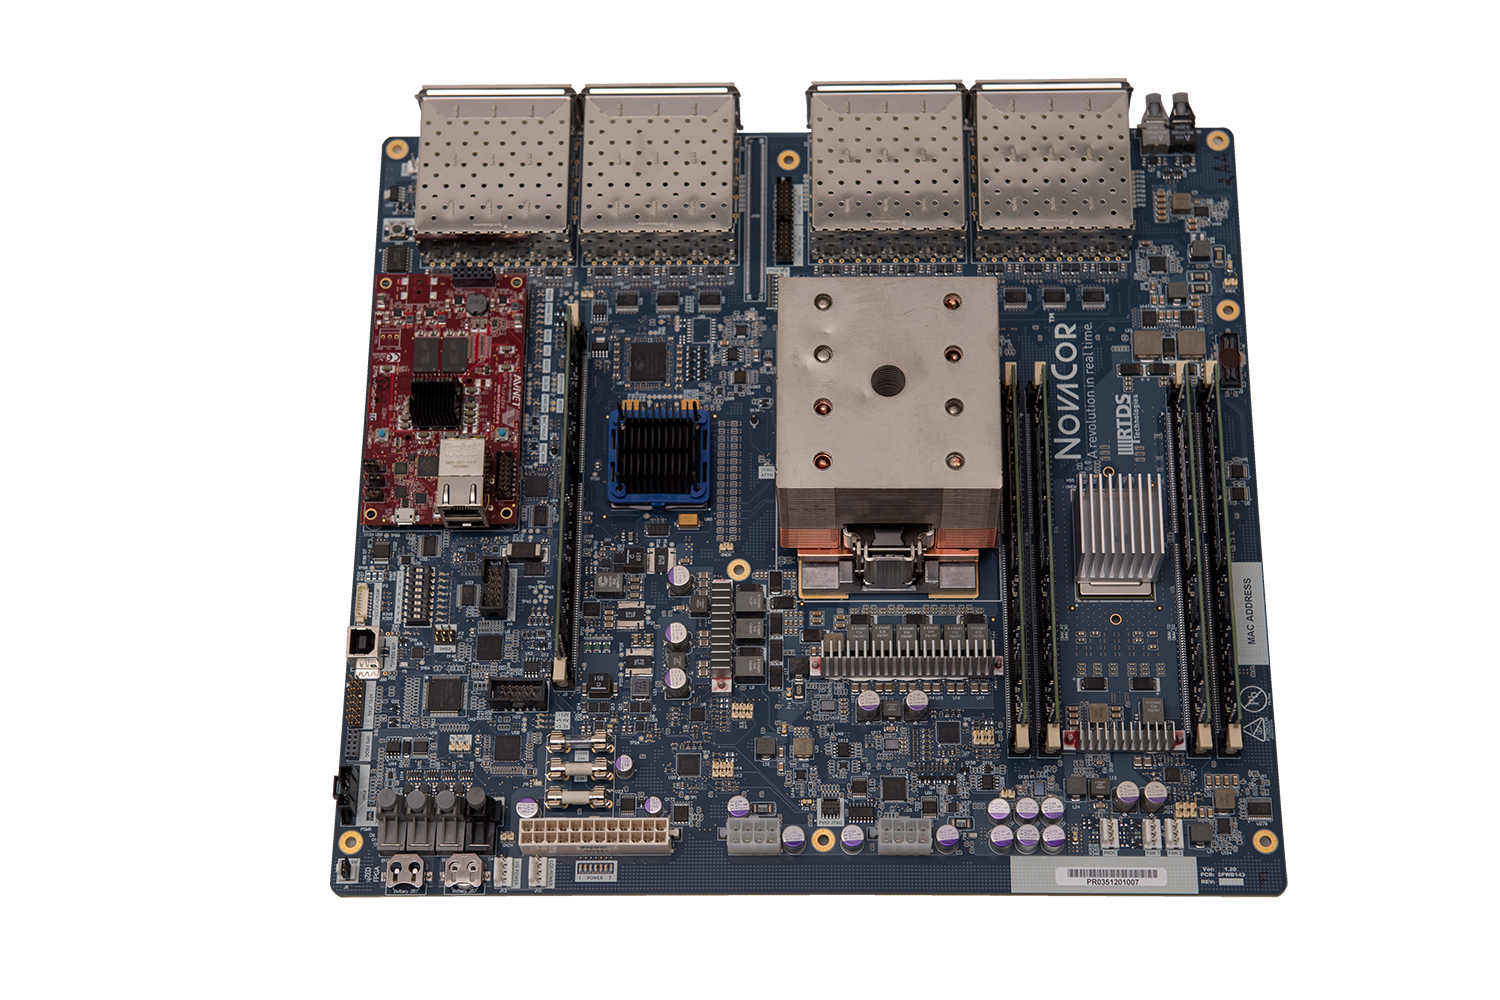 NovaCor board featuring IBM's POWER8 processor